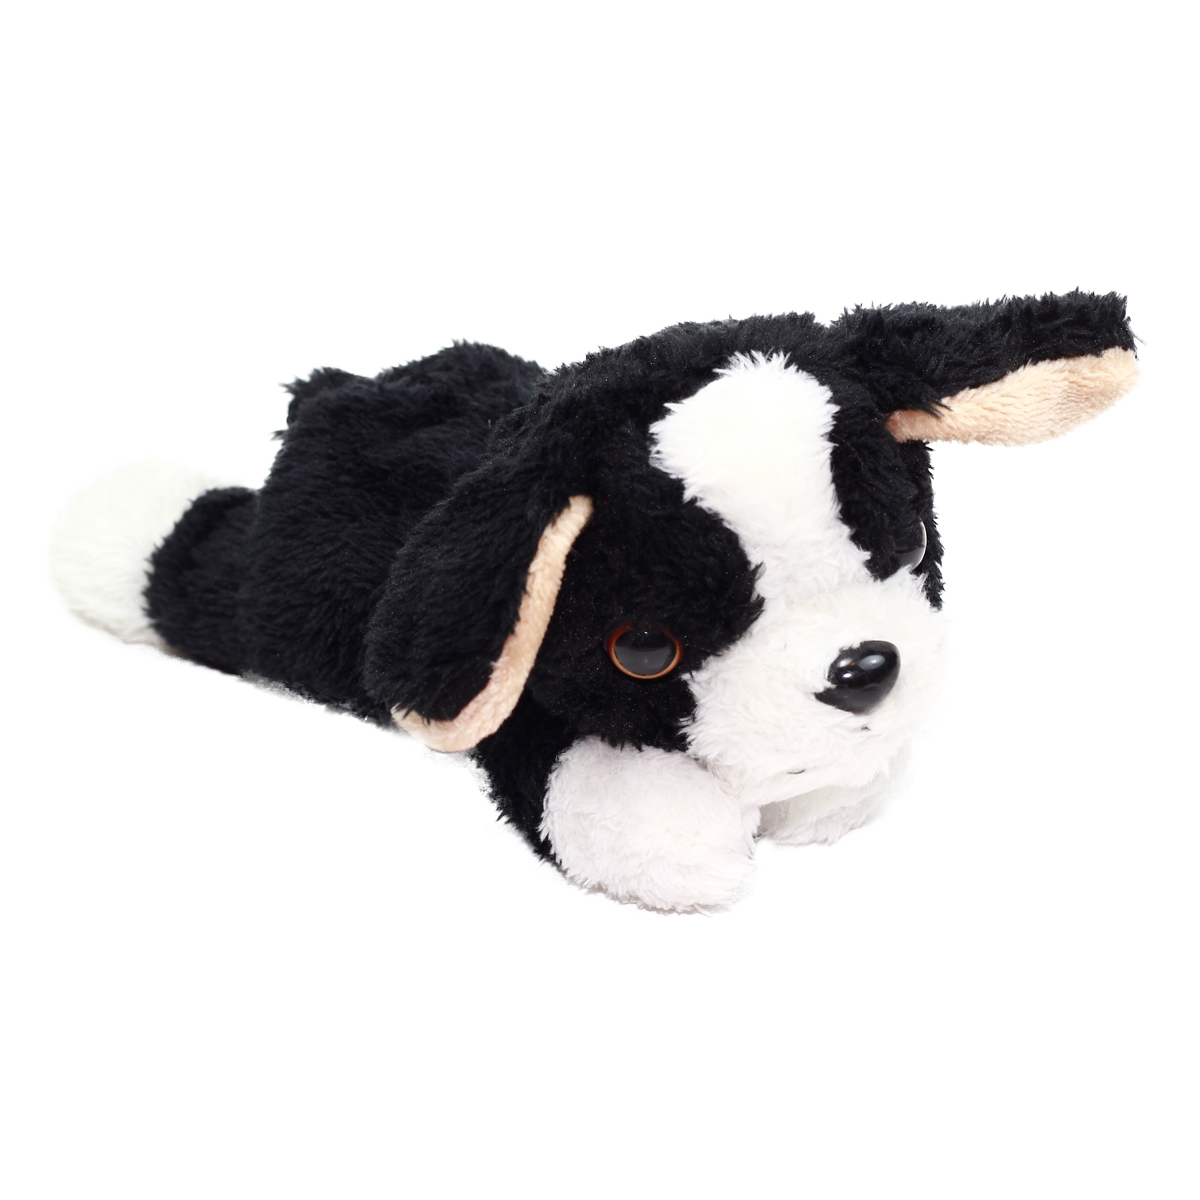 Kawaii Friends Dog Collection Black White Plush 9 Inches